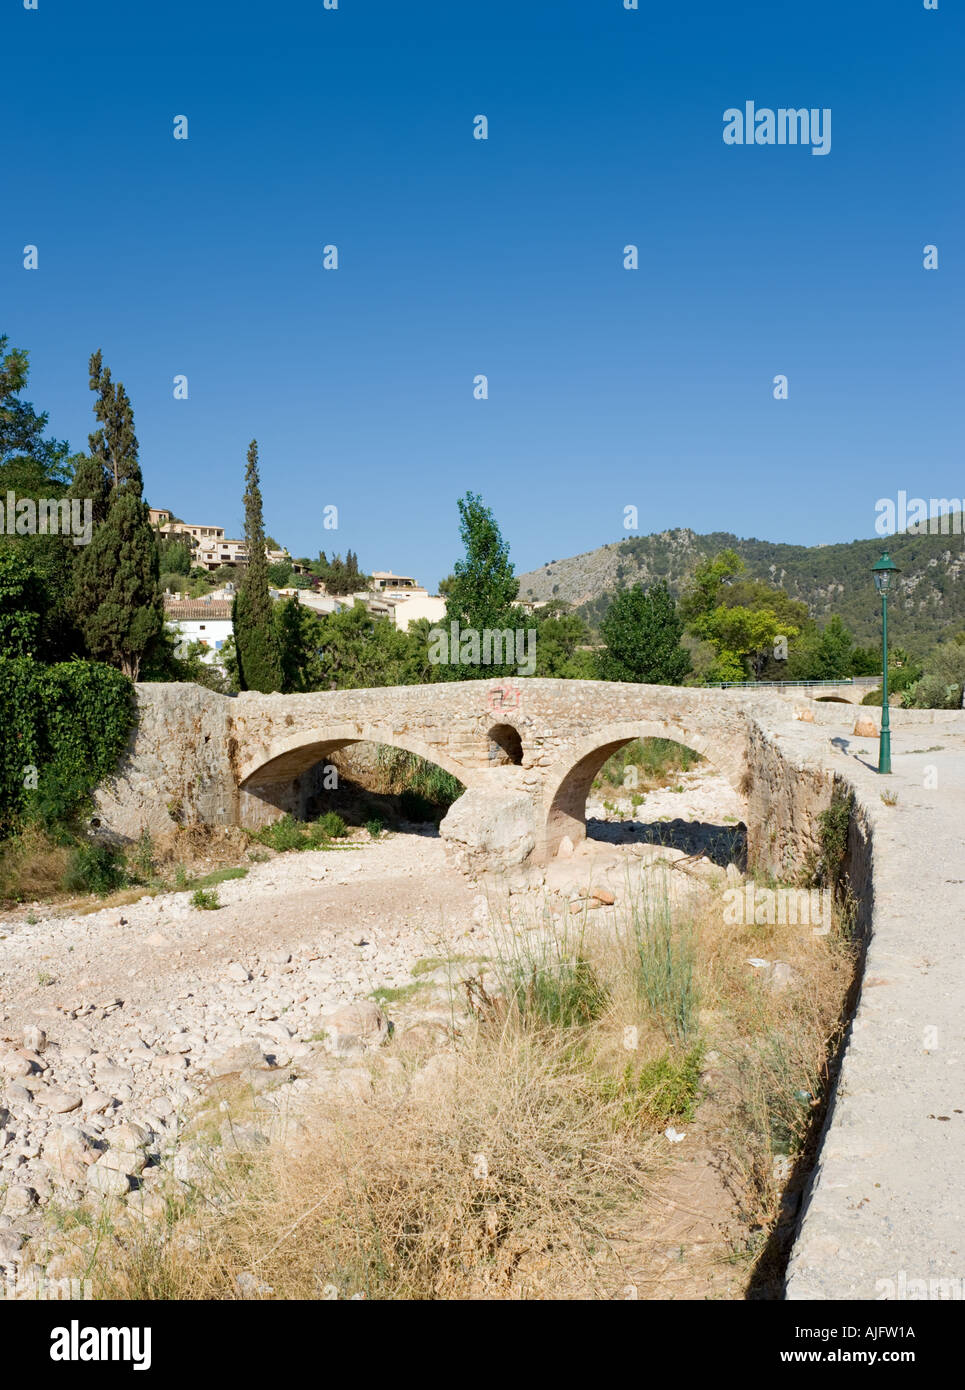 Roman Bridge in the old town of Pollensa (Pollenca), Mallorca, Spain Stock Photo